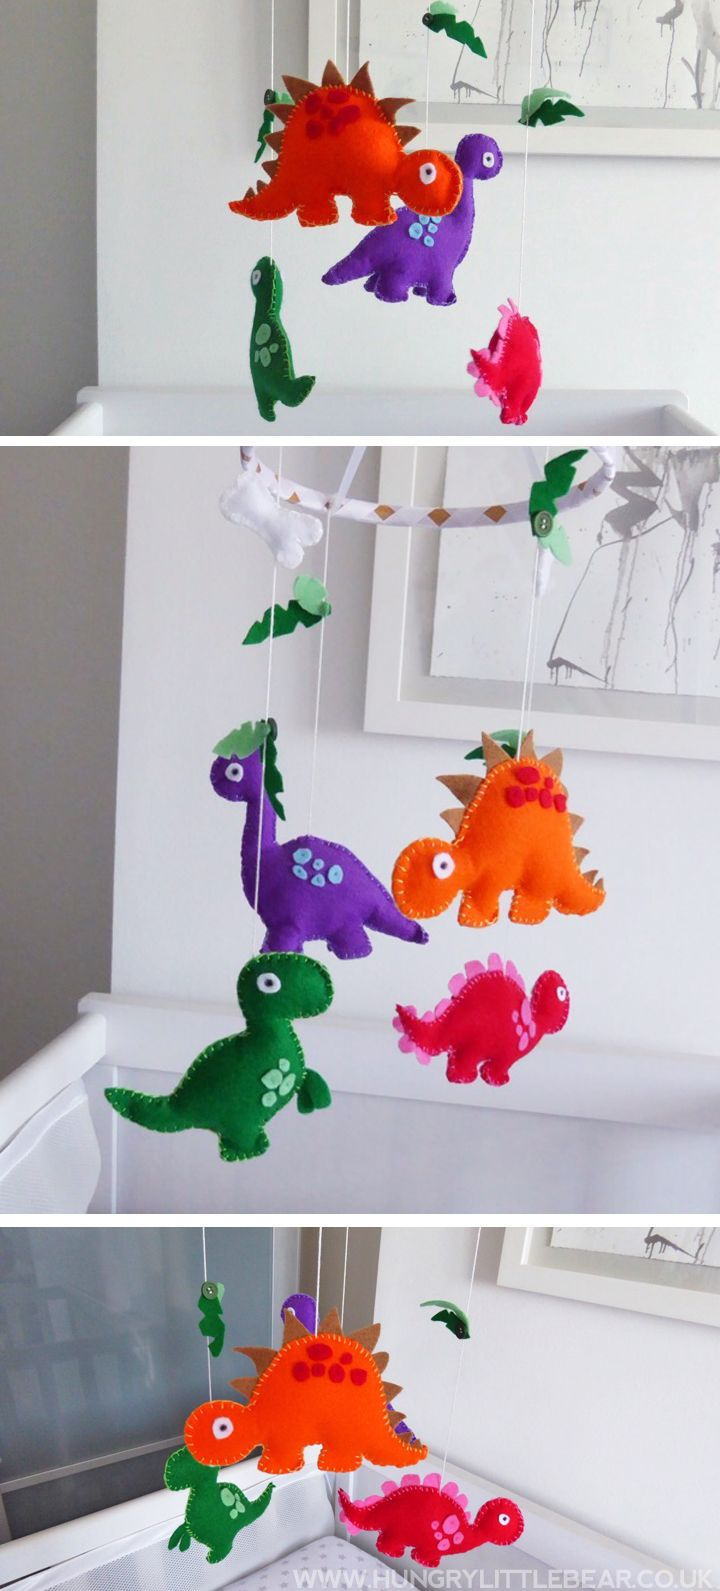 Froggies nursery wall decals by couture d 233 co - Create Your Own Diy Dinosaur Baby Mobile With This Super Simple Tutorial